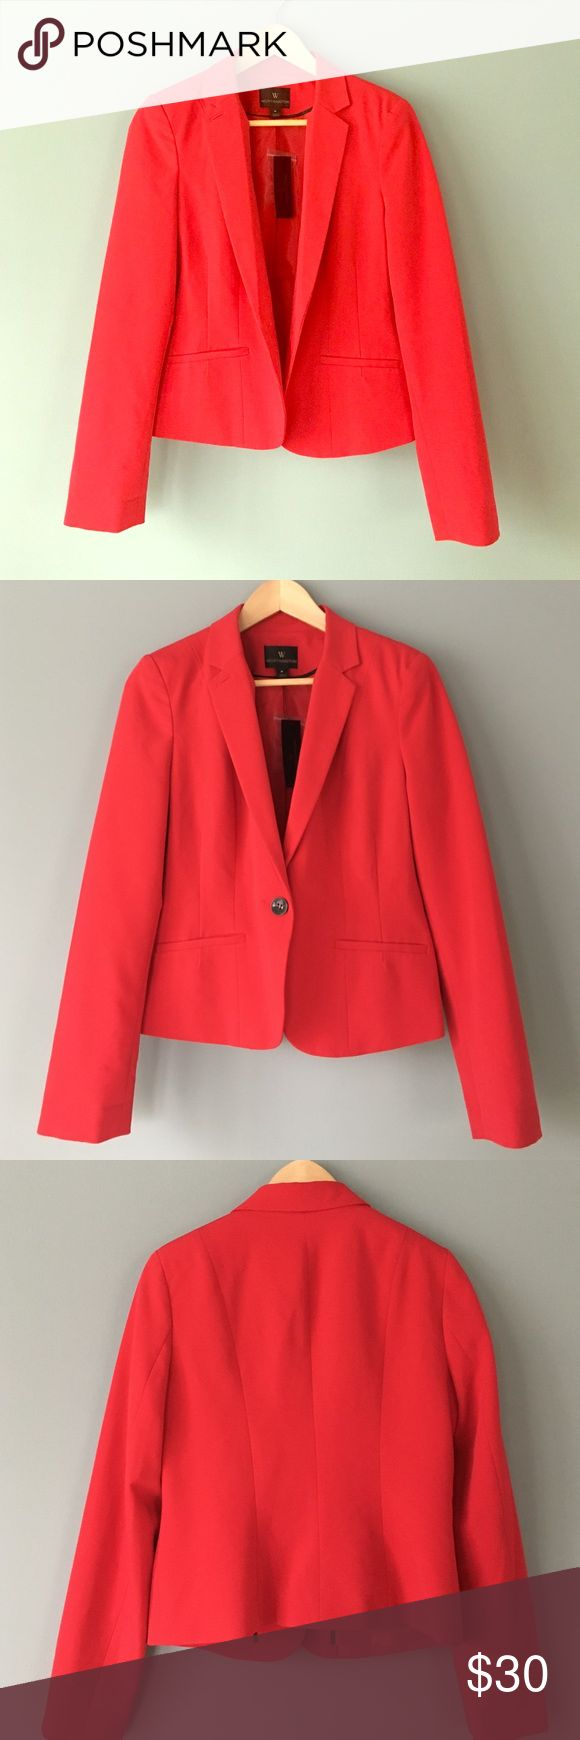 Red Blazer NWT, one button, two pockets, fitted, single breasted Worthington Jackets & Coats Blazers